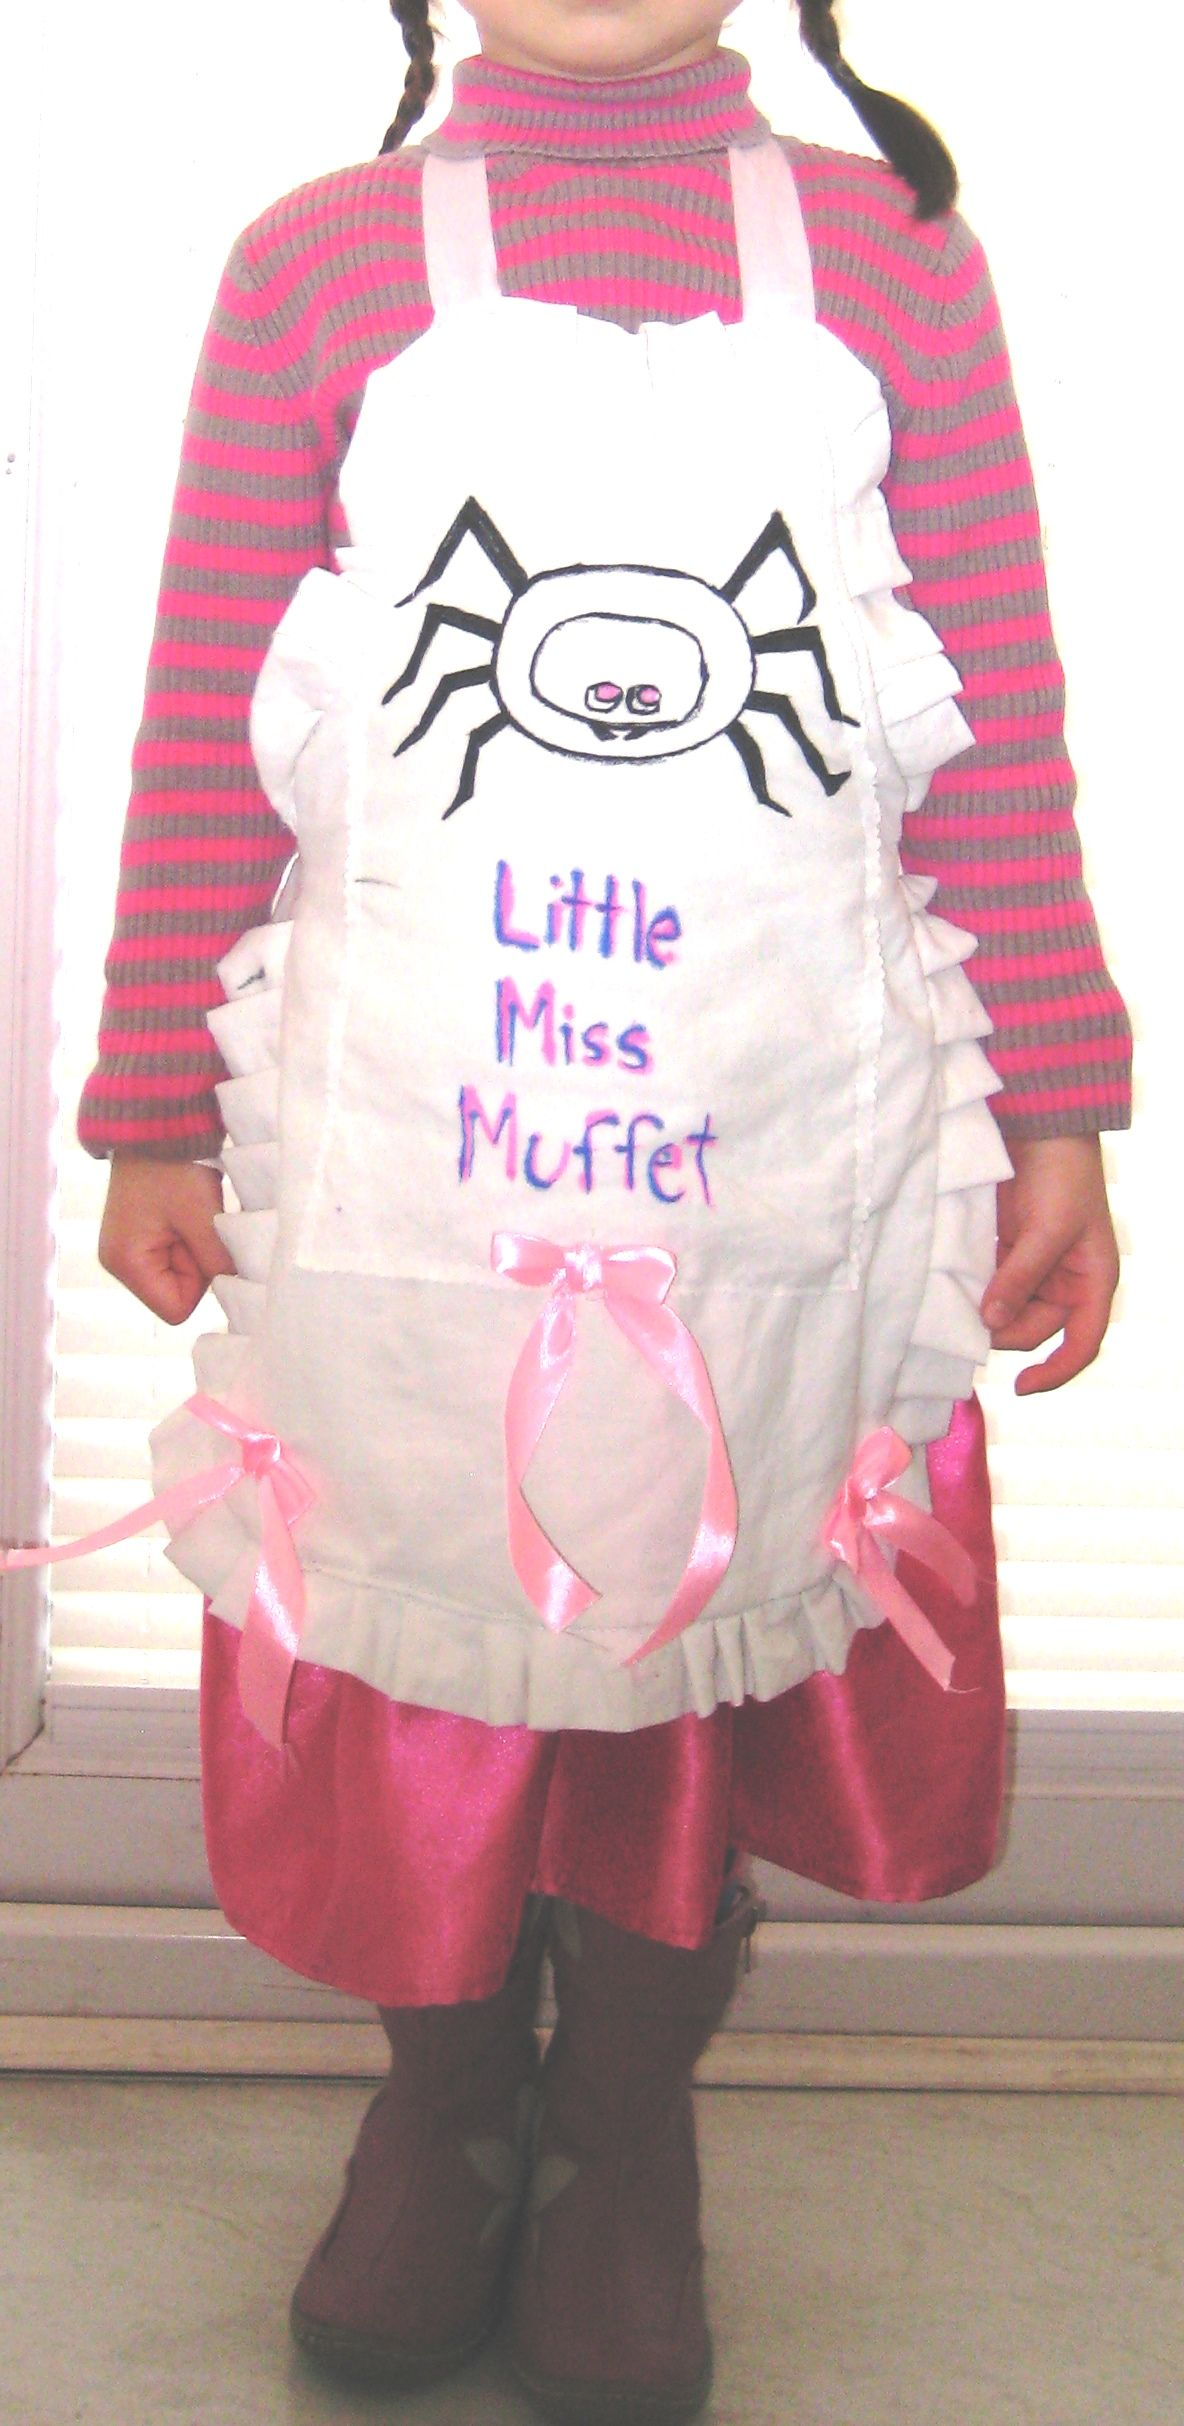 Handmade Diy 20min Little Miss Muffet Apron Made With What You Have In Your Home This Is From A Bedshe Little Miss Muffet Costume School Crafts Little Miss